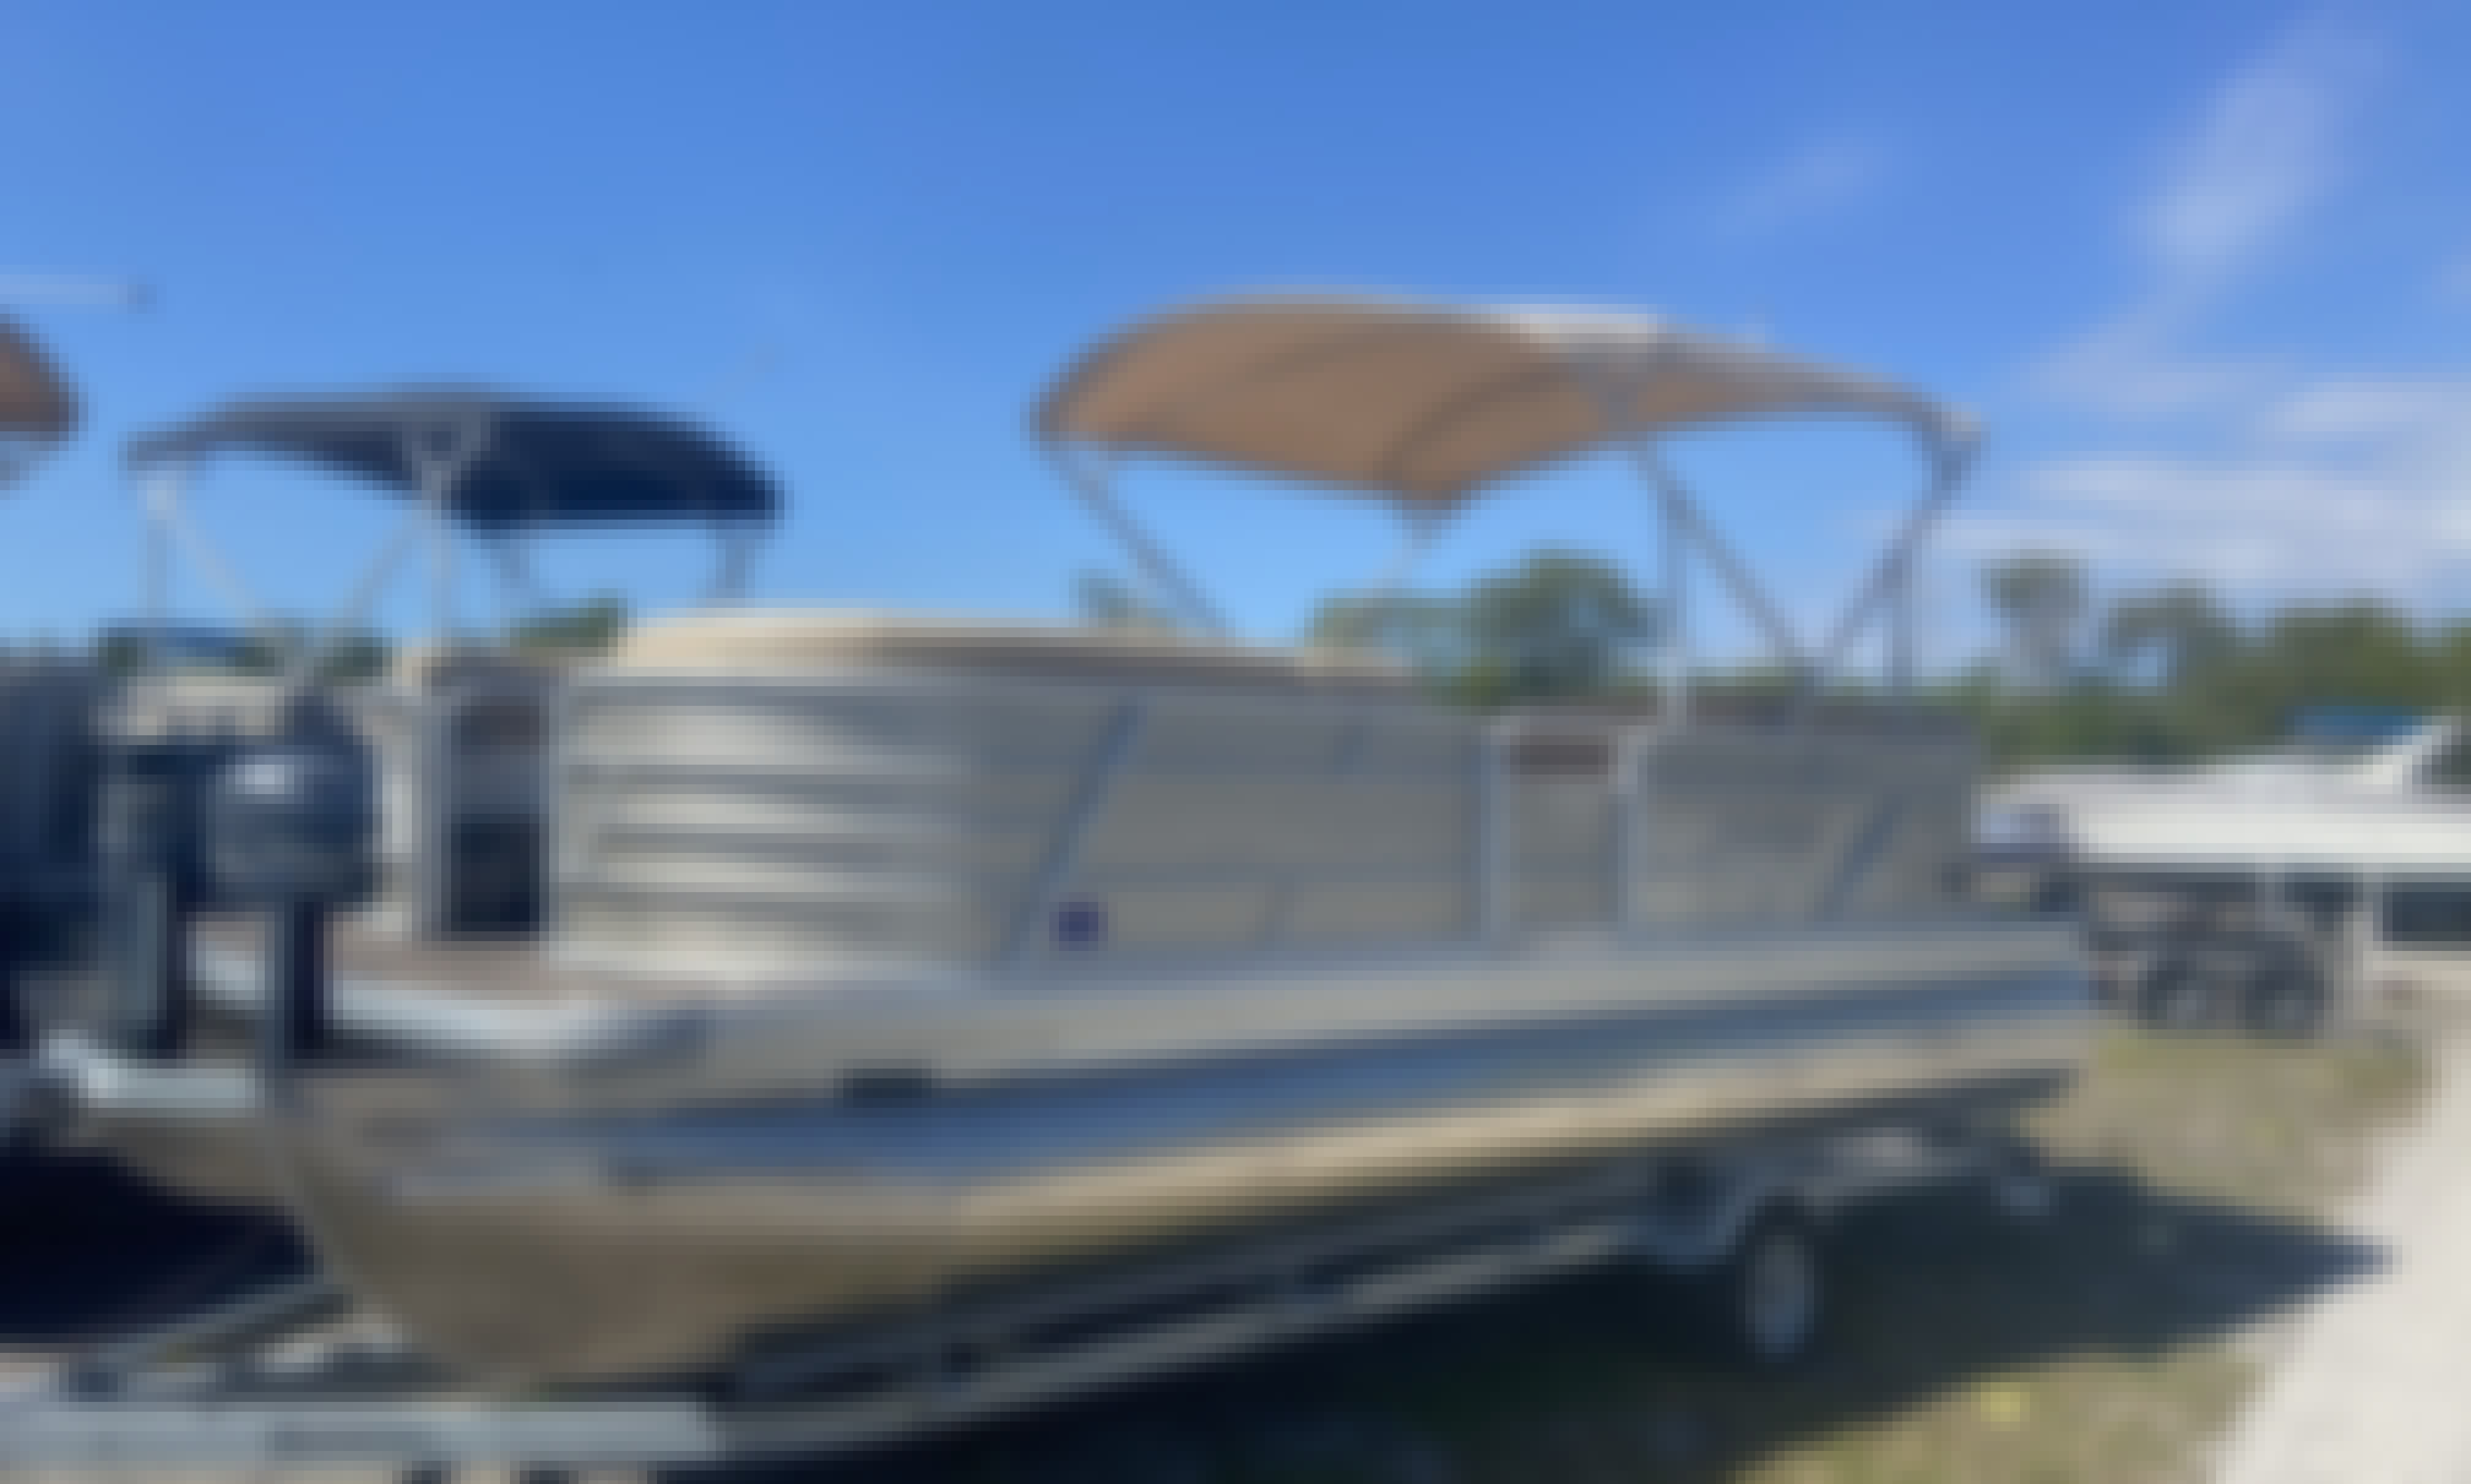 22' Sweetwater Pontoon Lounger for Rent on Tampa Bay!